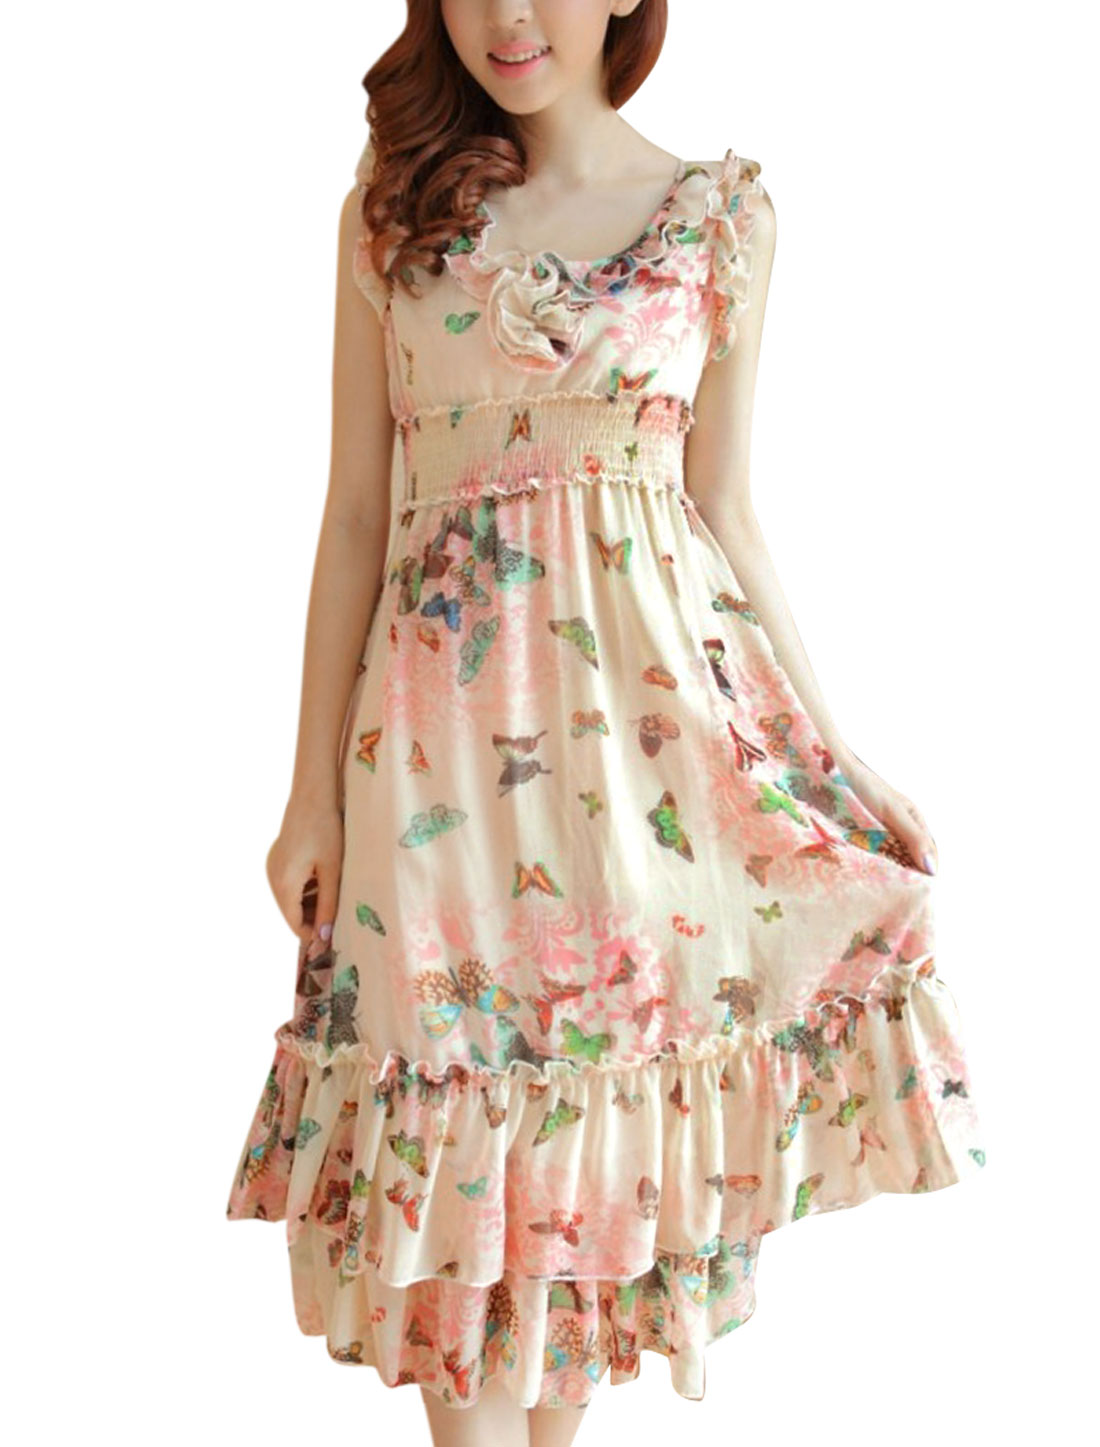 Lady Butterfly Pattern Smocked Waist Chiffon Dress Beige Light Pink XS